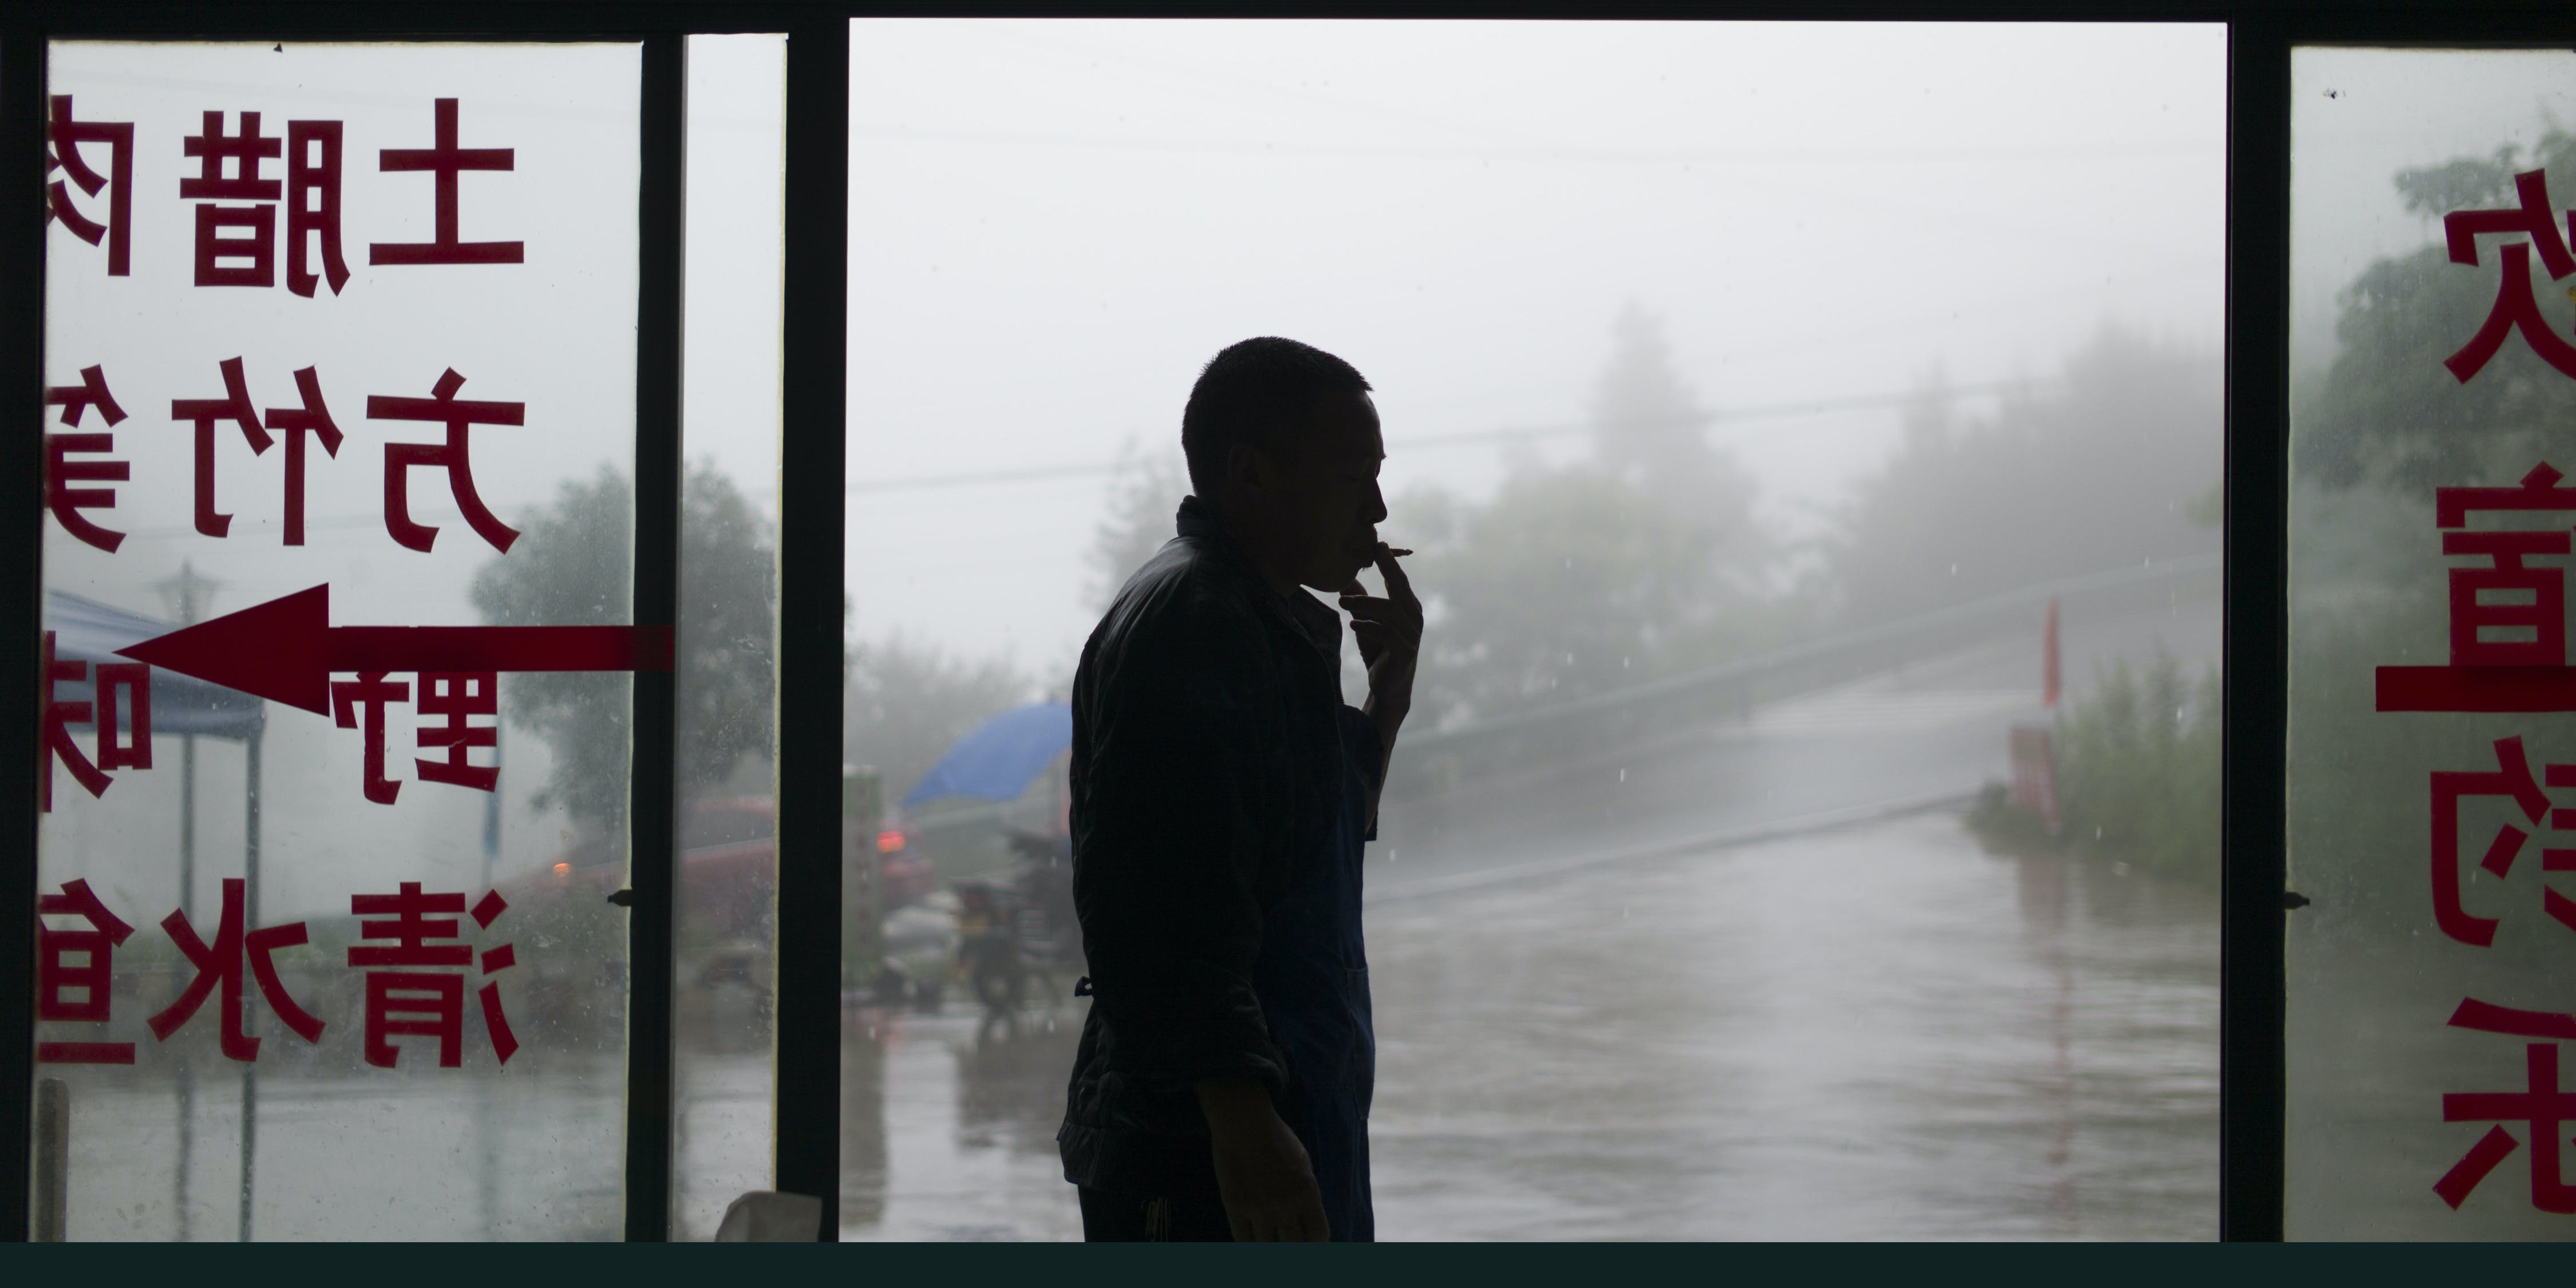 A man smokes on the outskirts of Chongqing, southwest China, on June 1, 2017. (Photo by Fred Dufour/AFP via Getty Images)